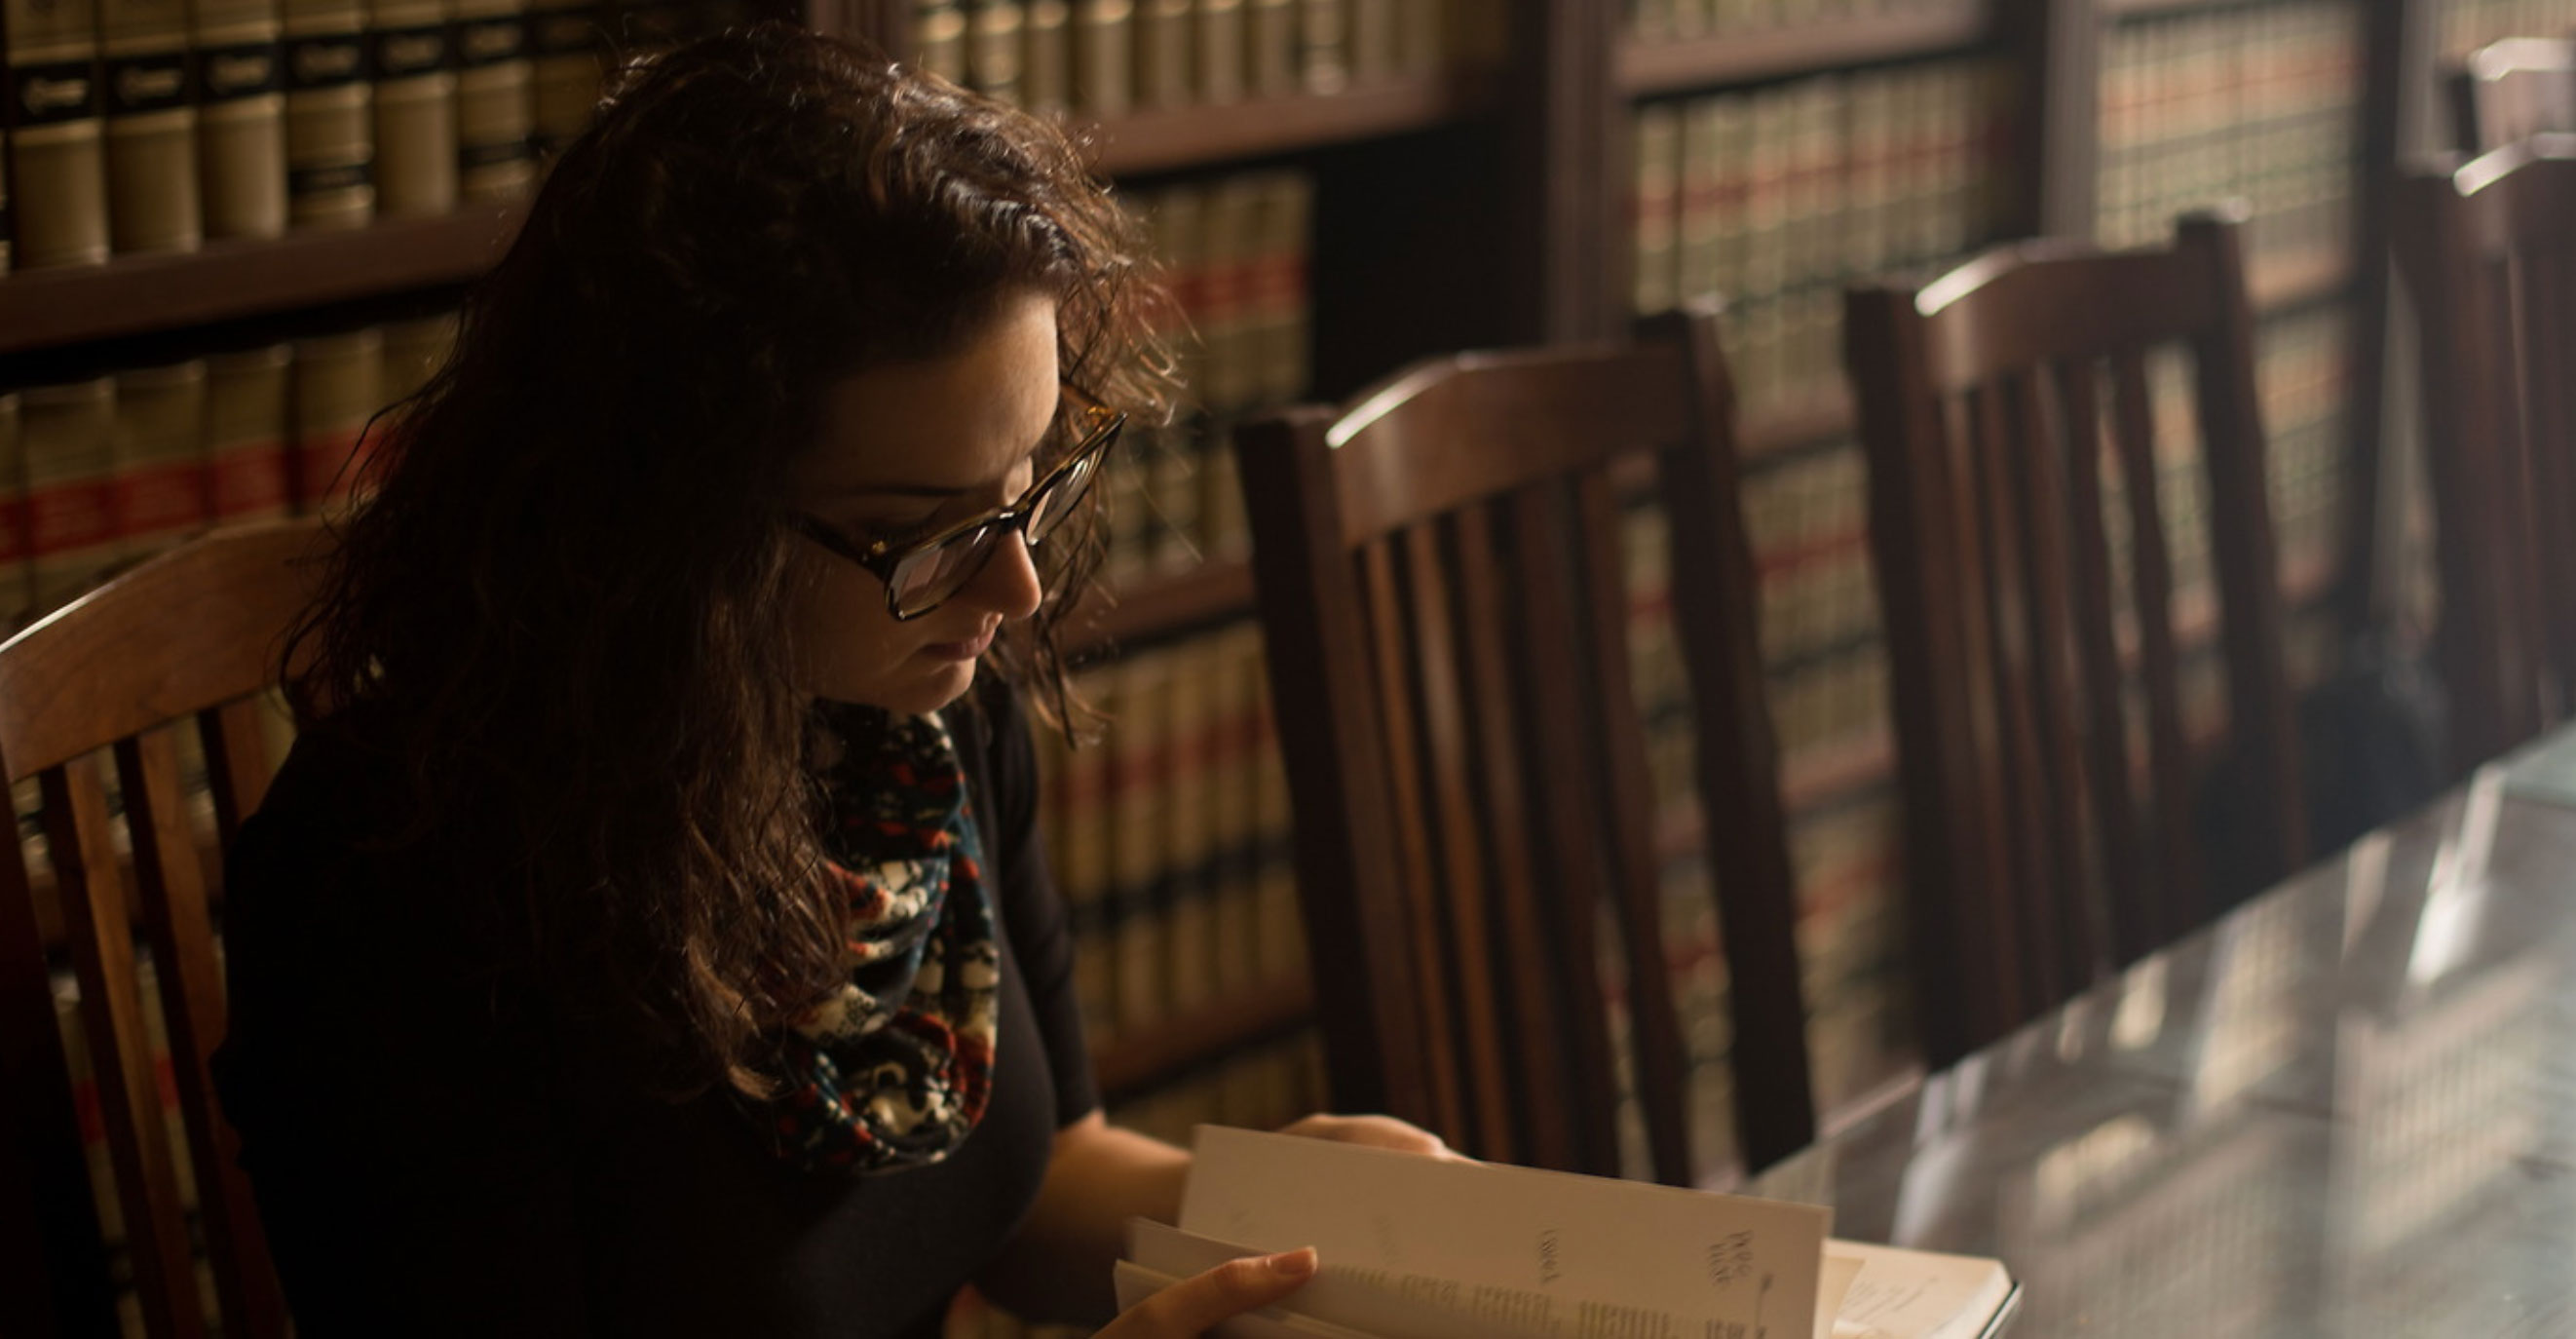 Student studying in the law library